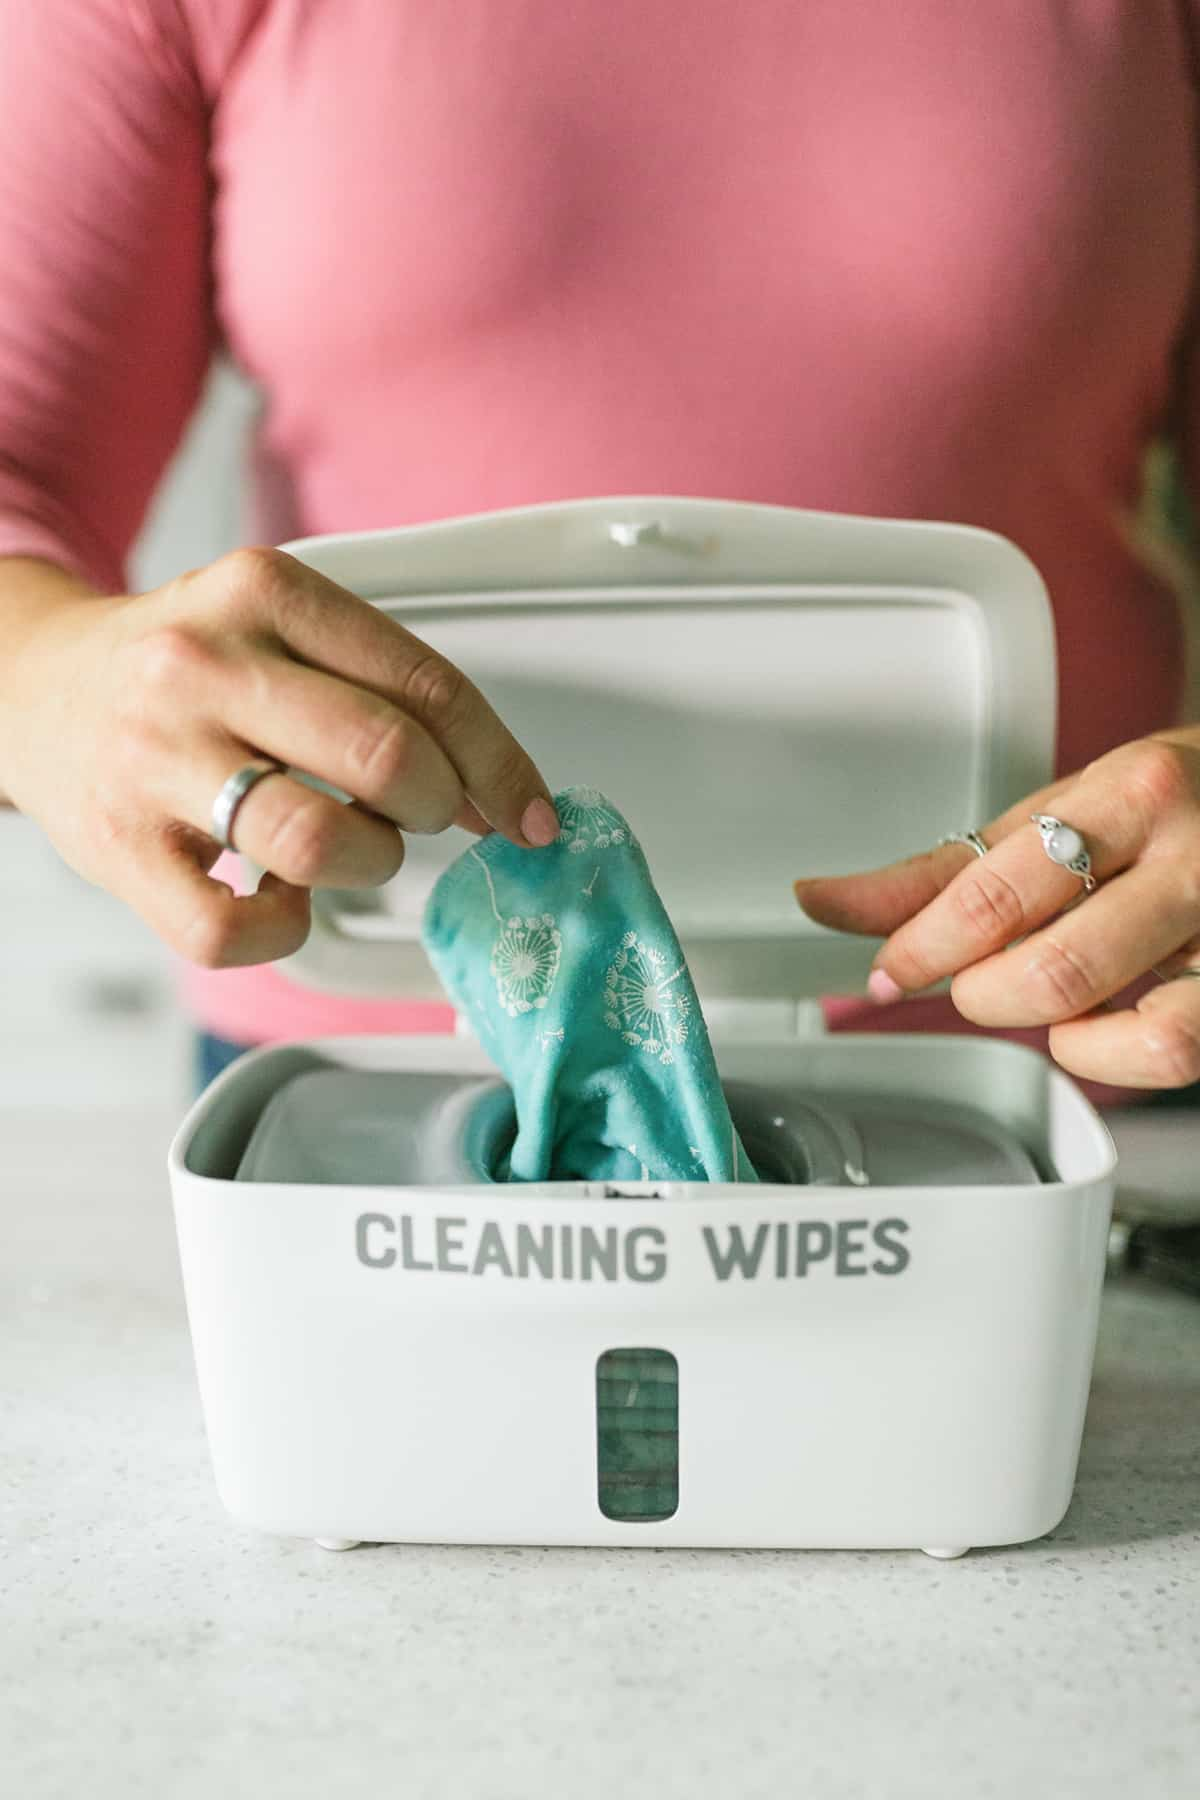 Woman's hands pulling DIY Disinfecting Wipes out of a dispenser.